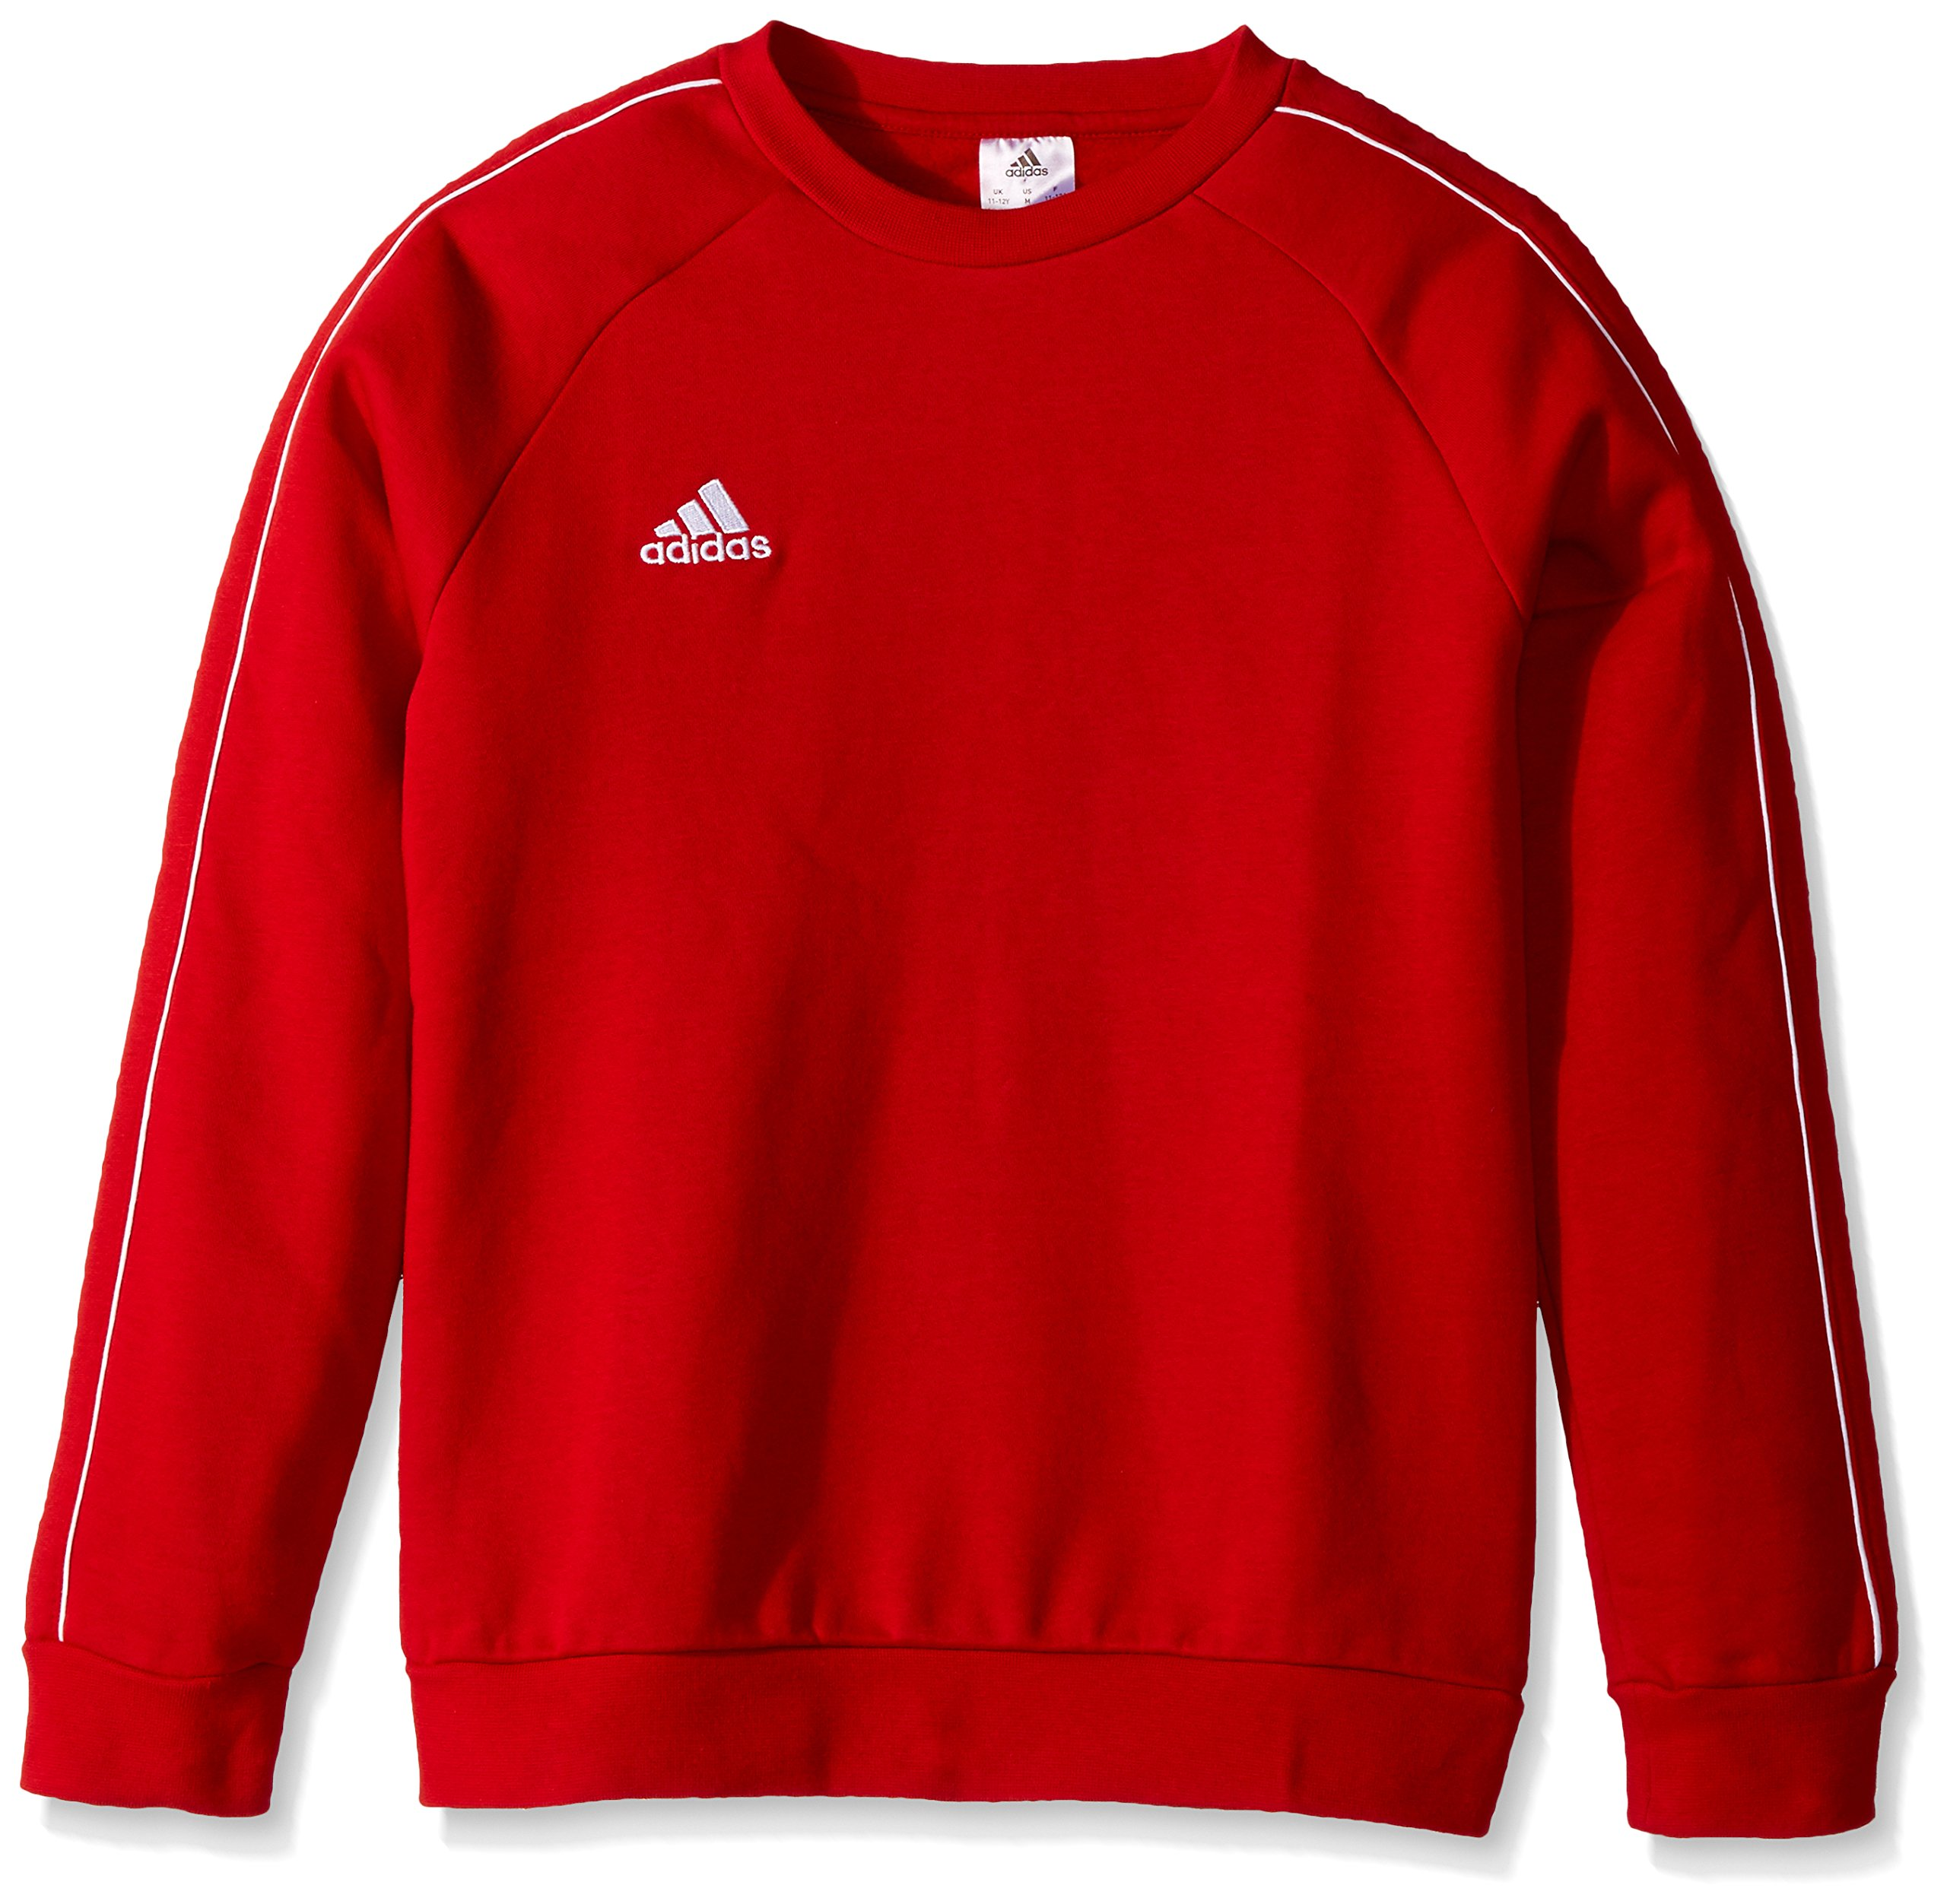 adidas Juniors' Core 18 Soccer Sweatshirt, Power Red/White, X-Small by adidas